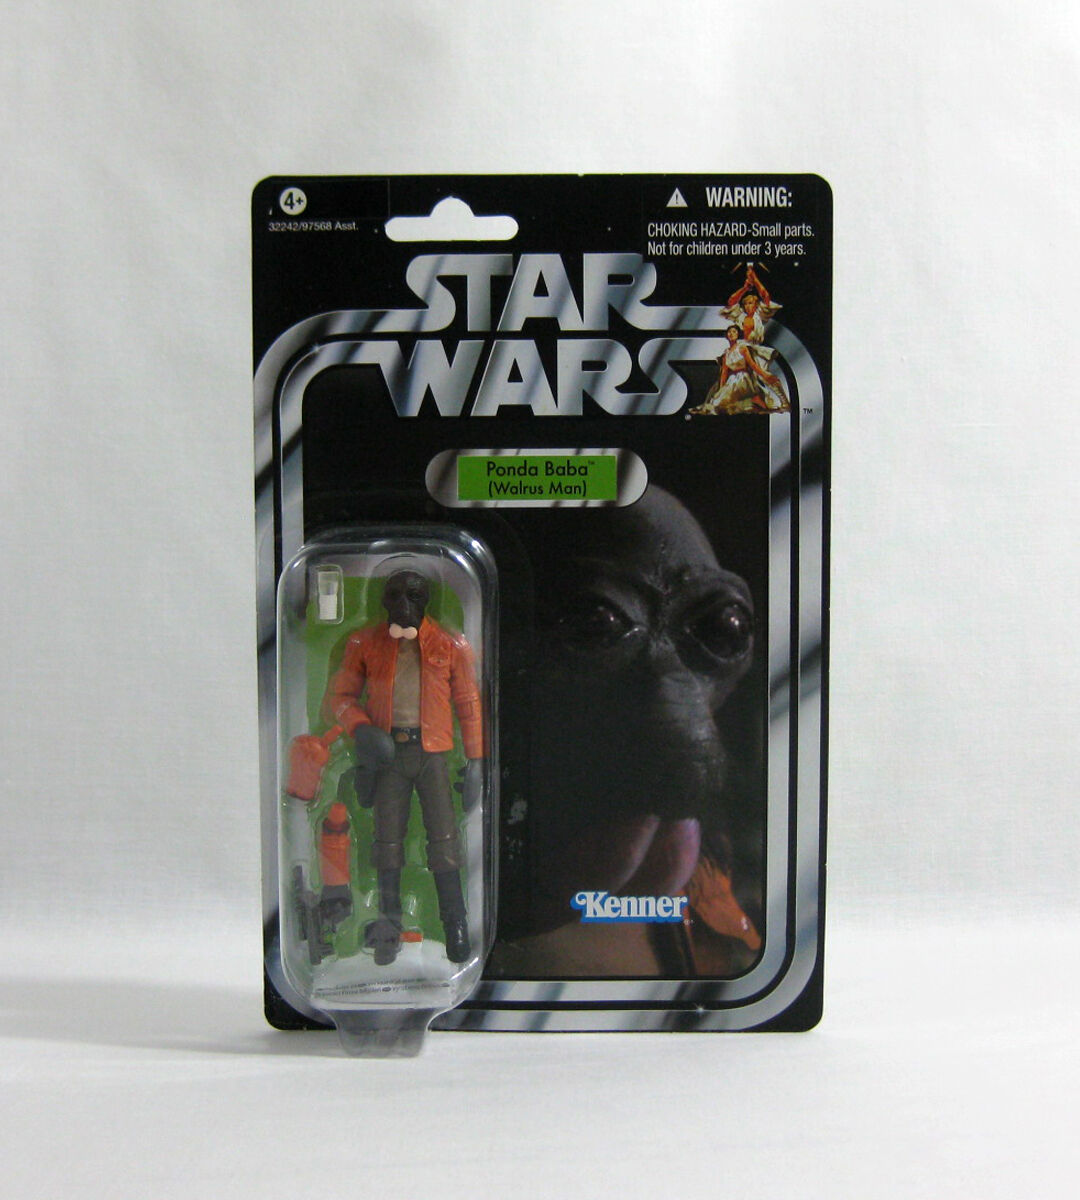 NEW 2011 Star Wars ✧ Ponda Baba ✧ Vintage Collection VC70 MOC